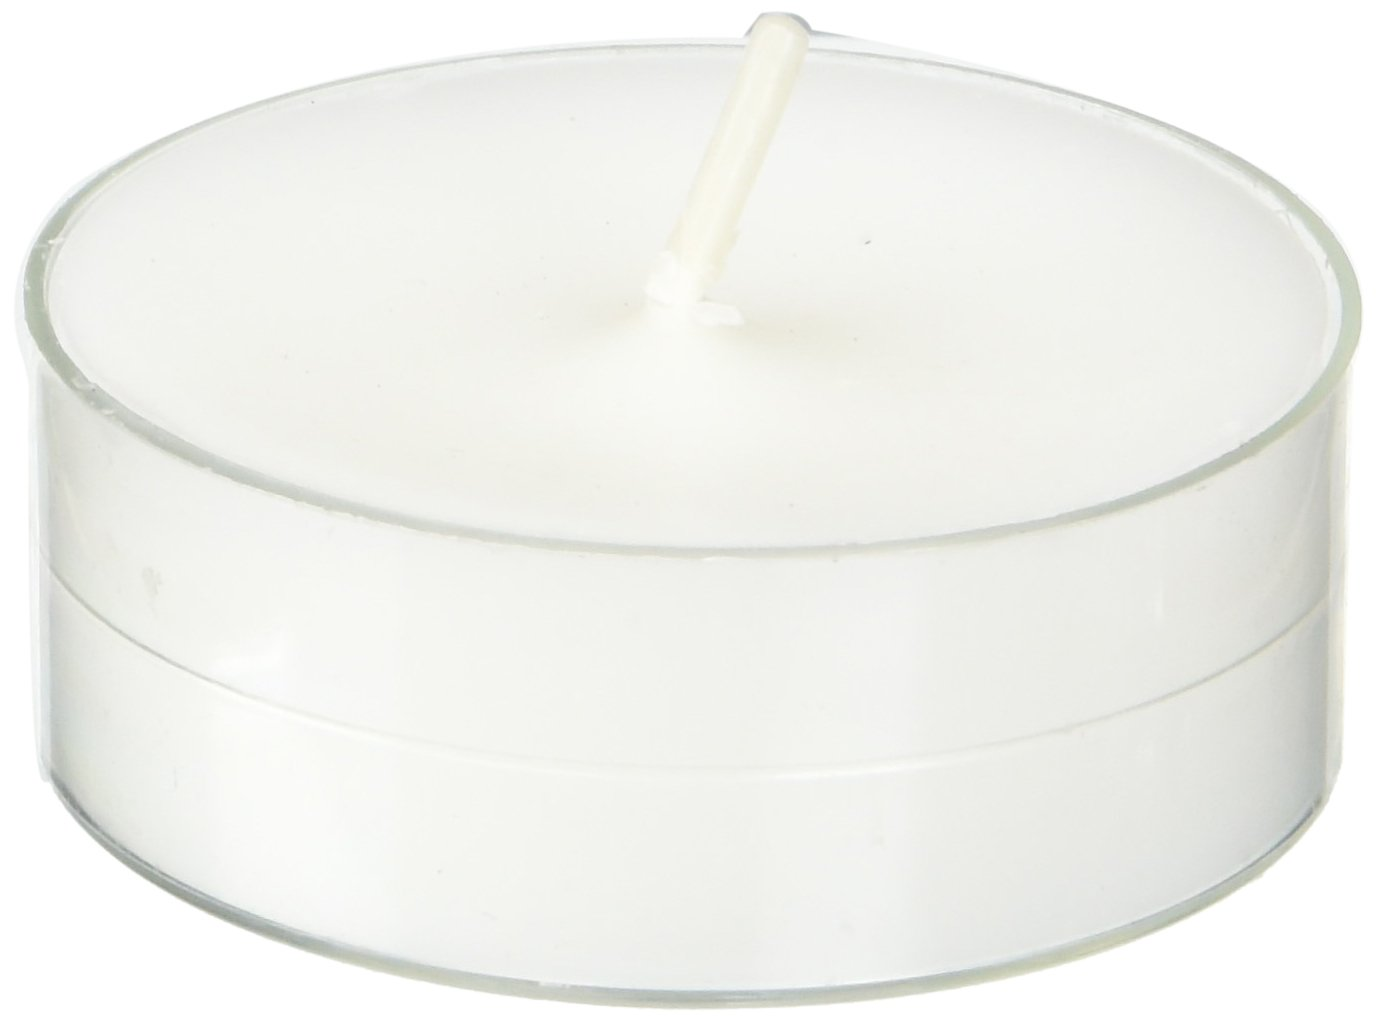 Zest Candle CTM-020_12 144-Piece Mega Oversized Tealight Candle, White by Zest Candle